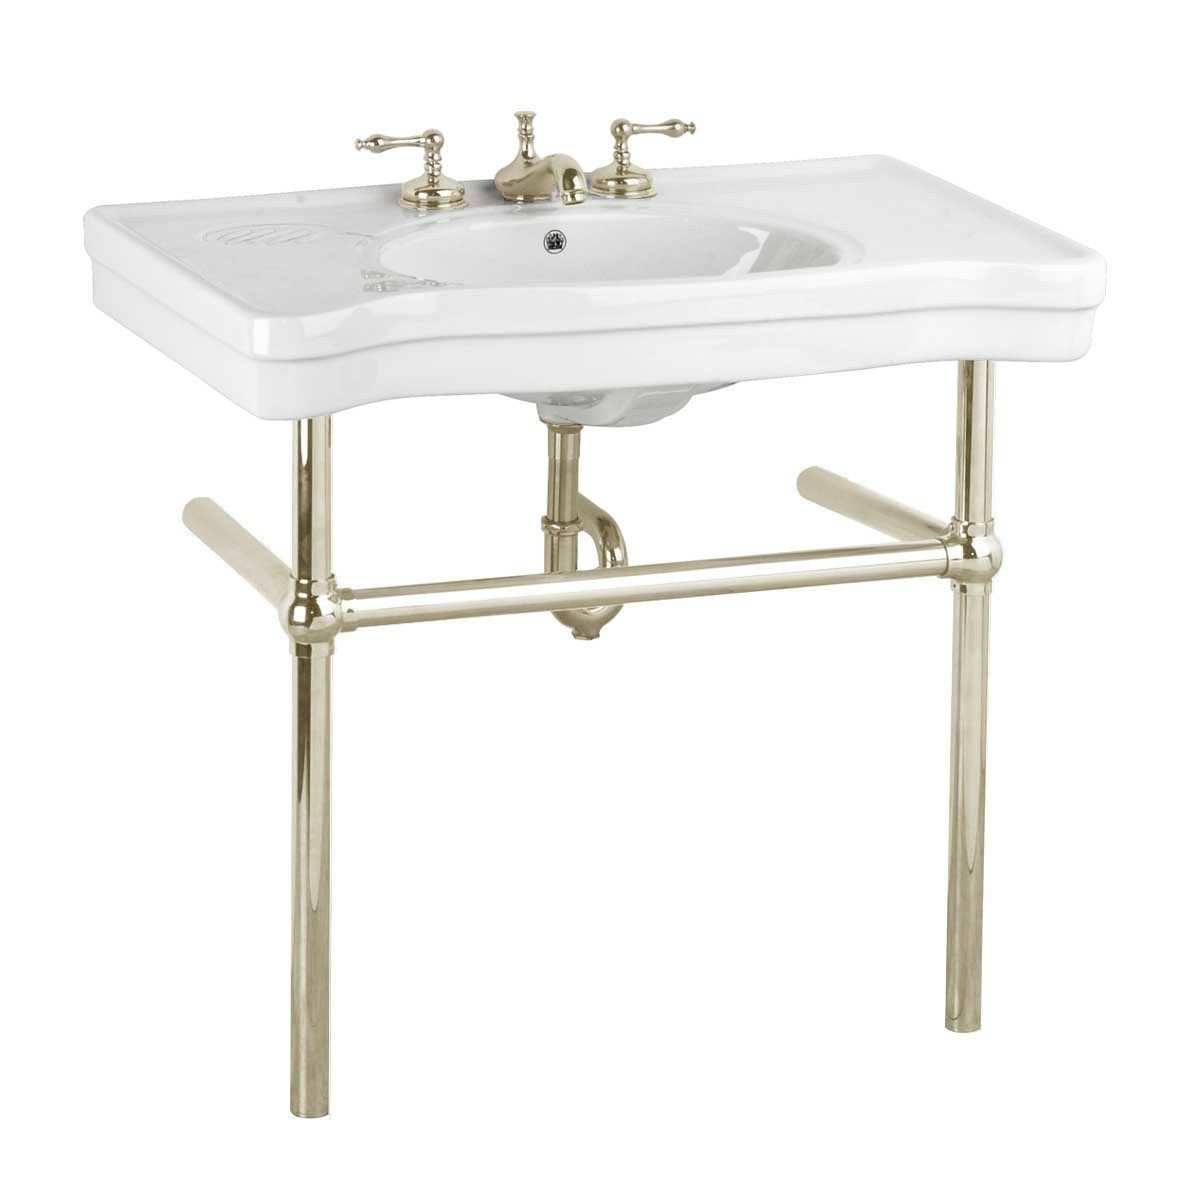 Classic white console sink with beautiful legs and vintage style chic.